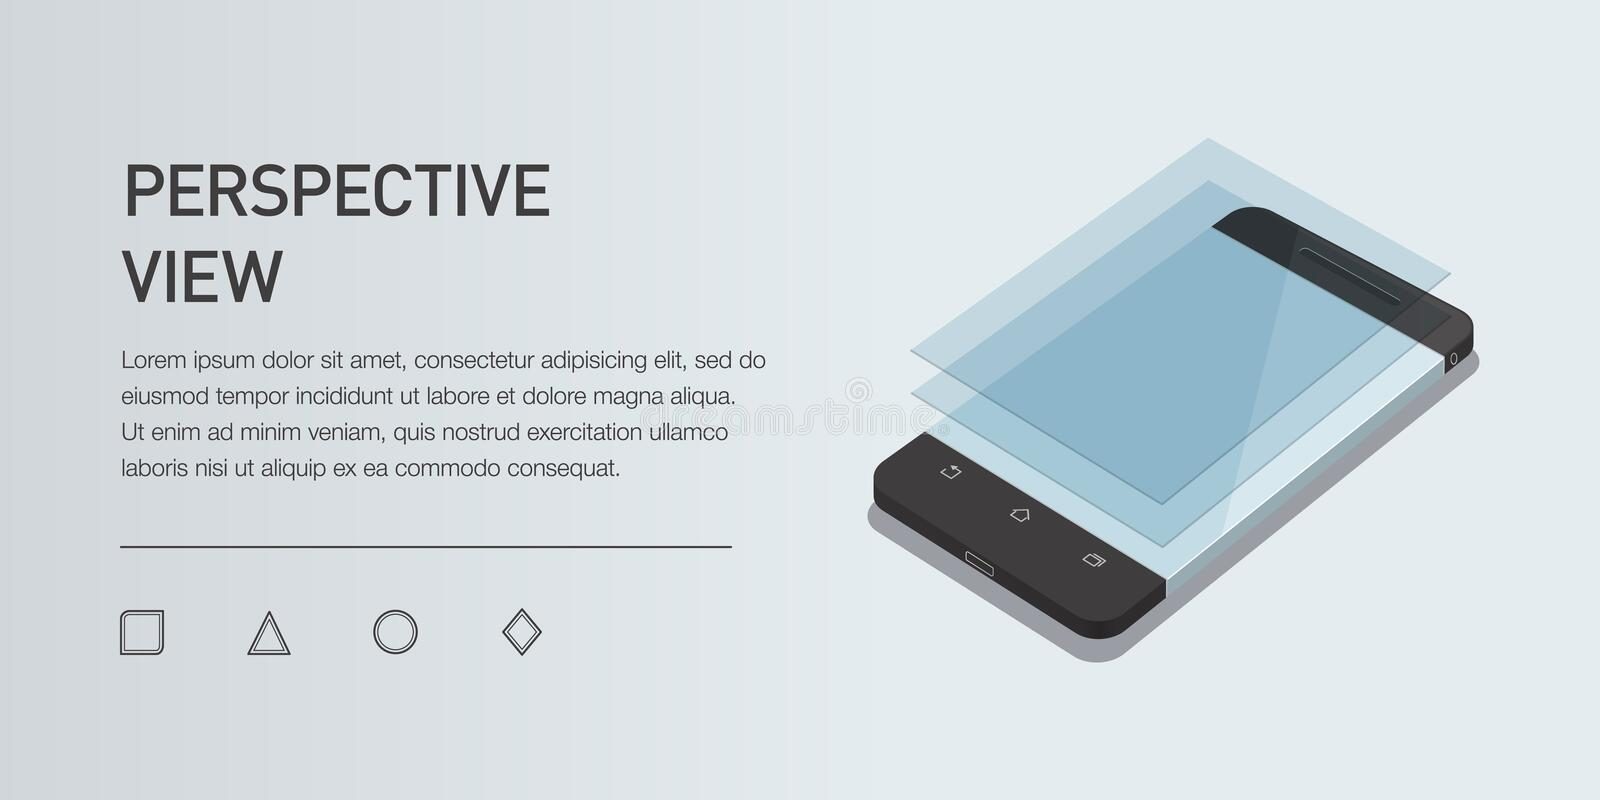 Vector minimalistic 3d isometric illustration cell phone. perspective view. Mockup generic smartphone. Template for infographic or presentation UI design vector illustration